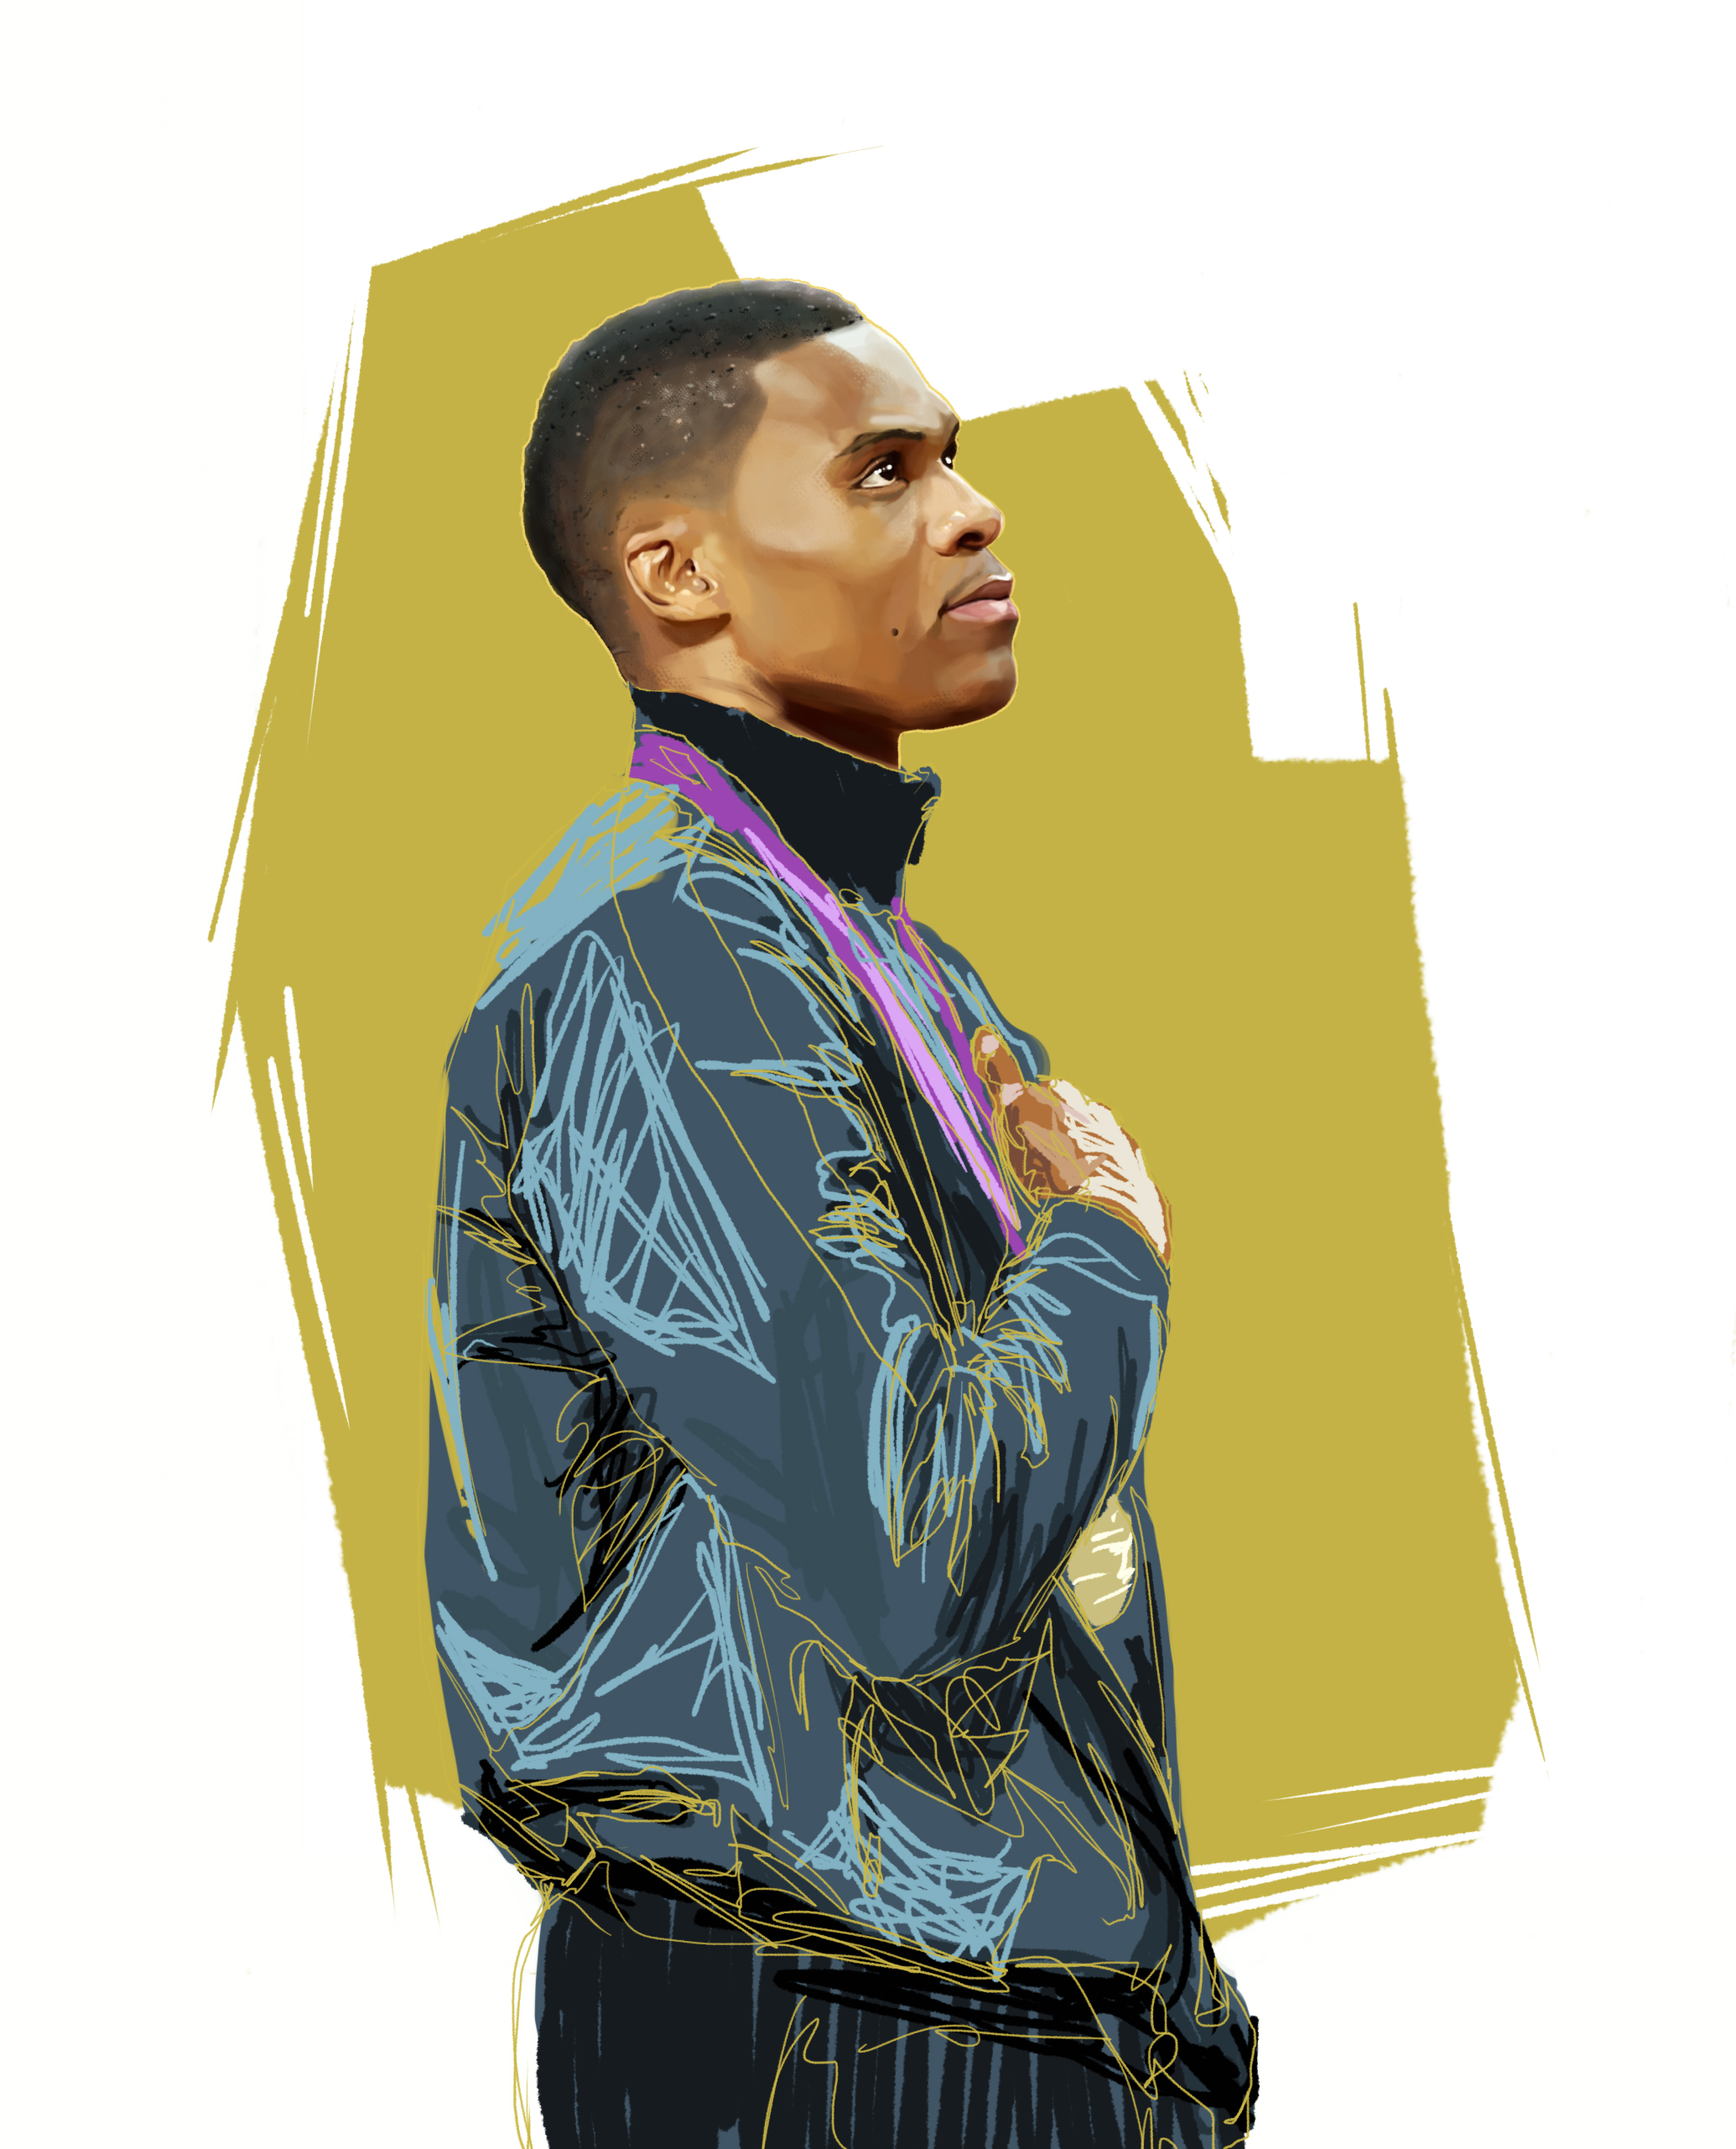 Russell Westbrook wins Gold medal